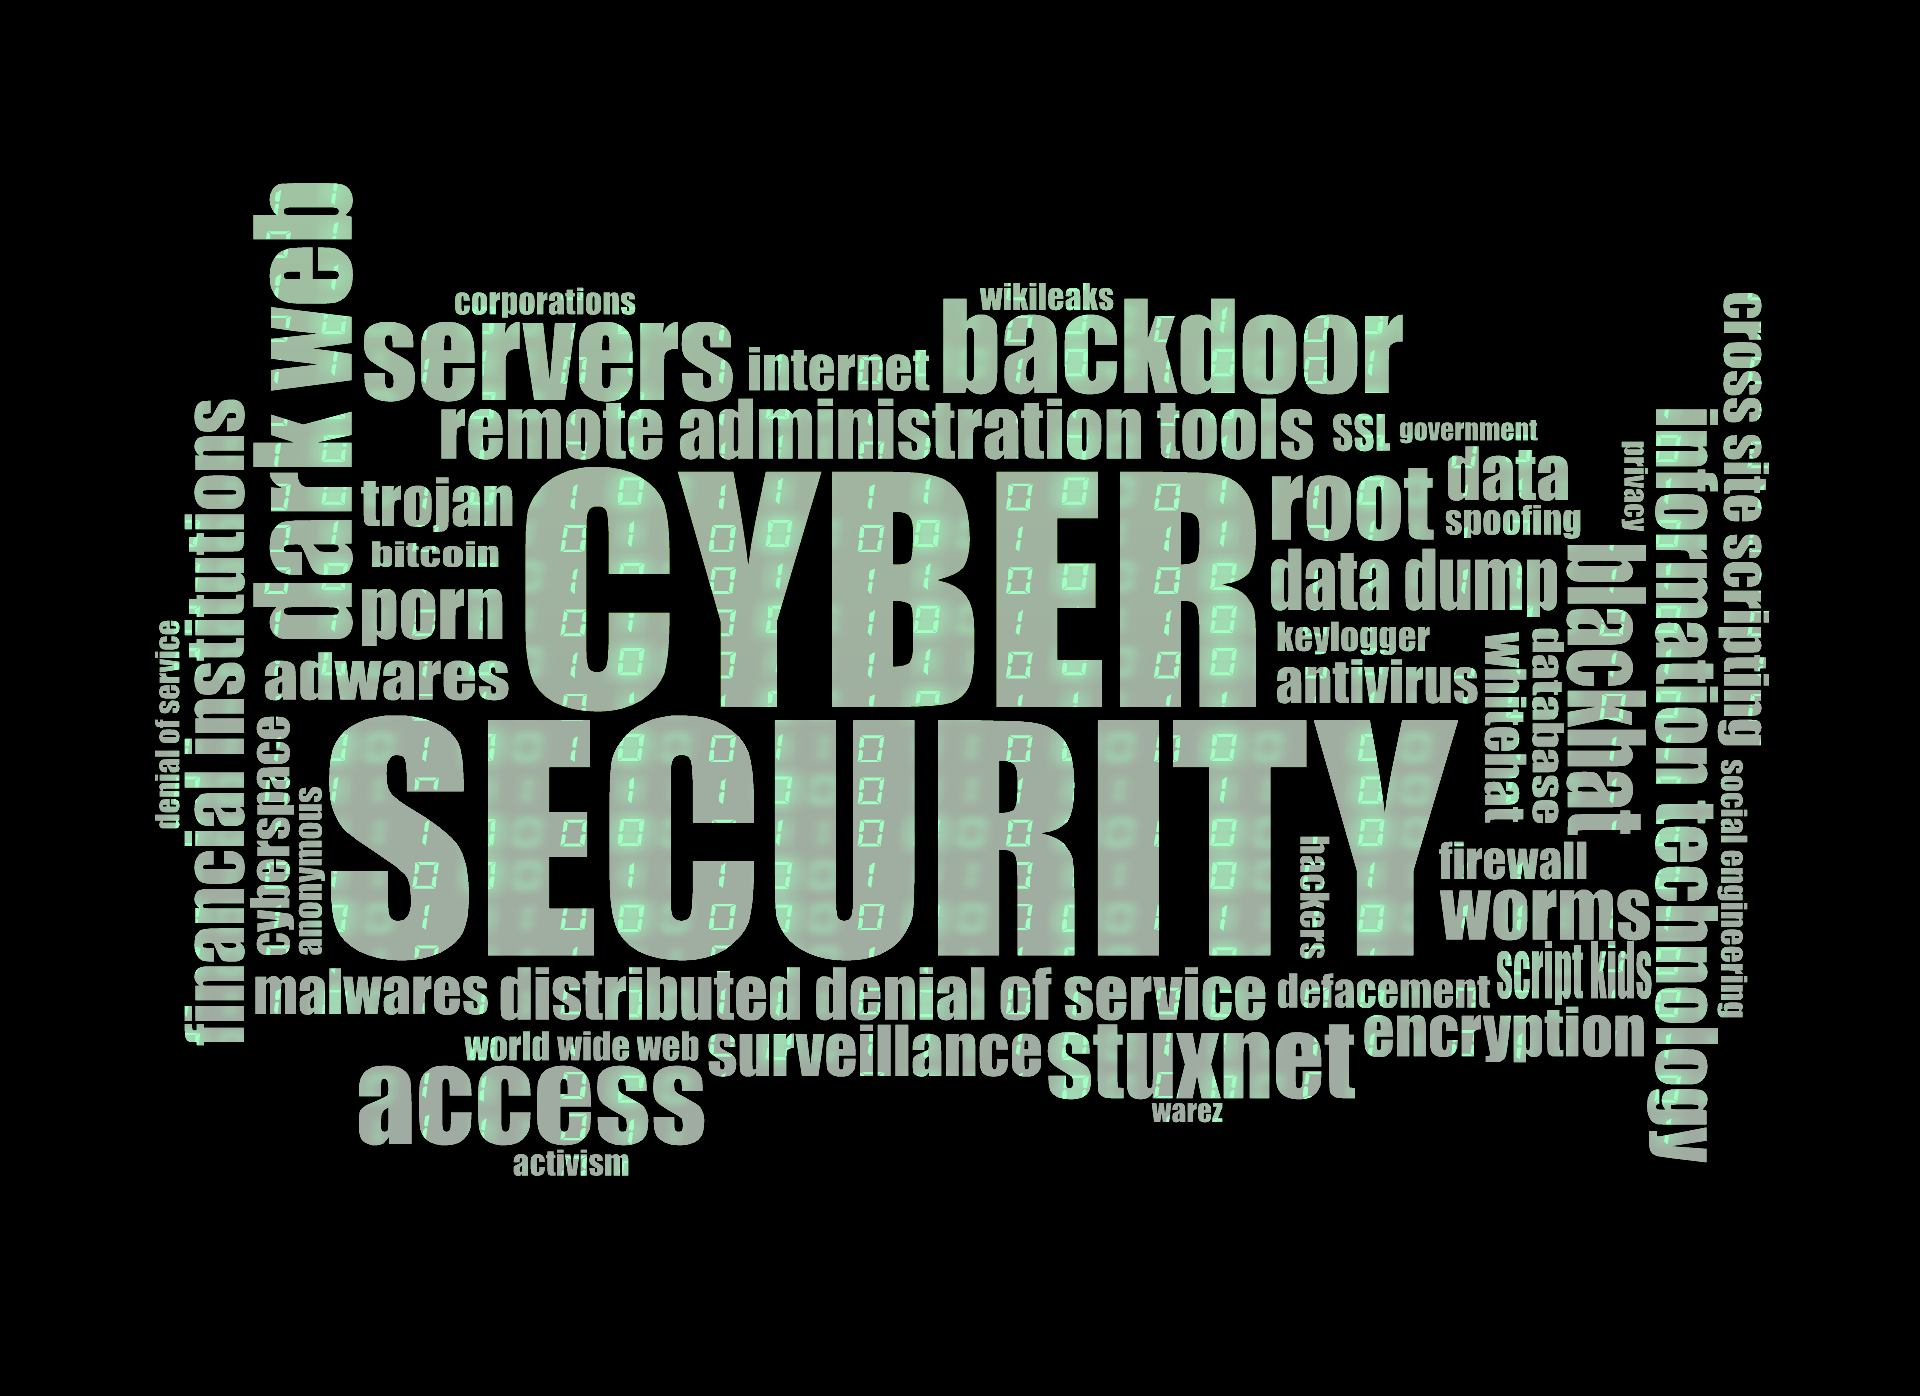 Why is Cyber Security important? 5 tips to protect yourself